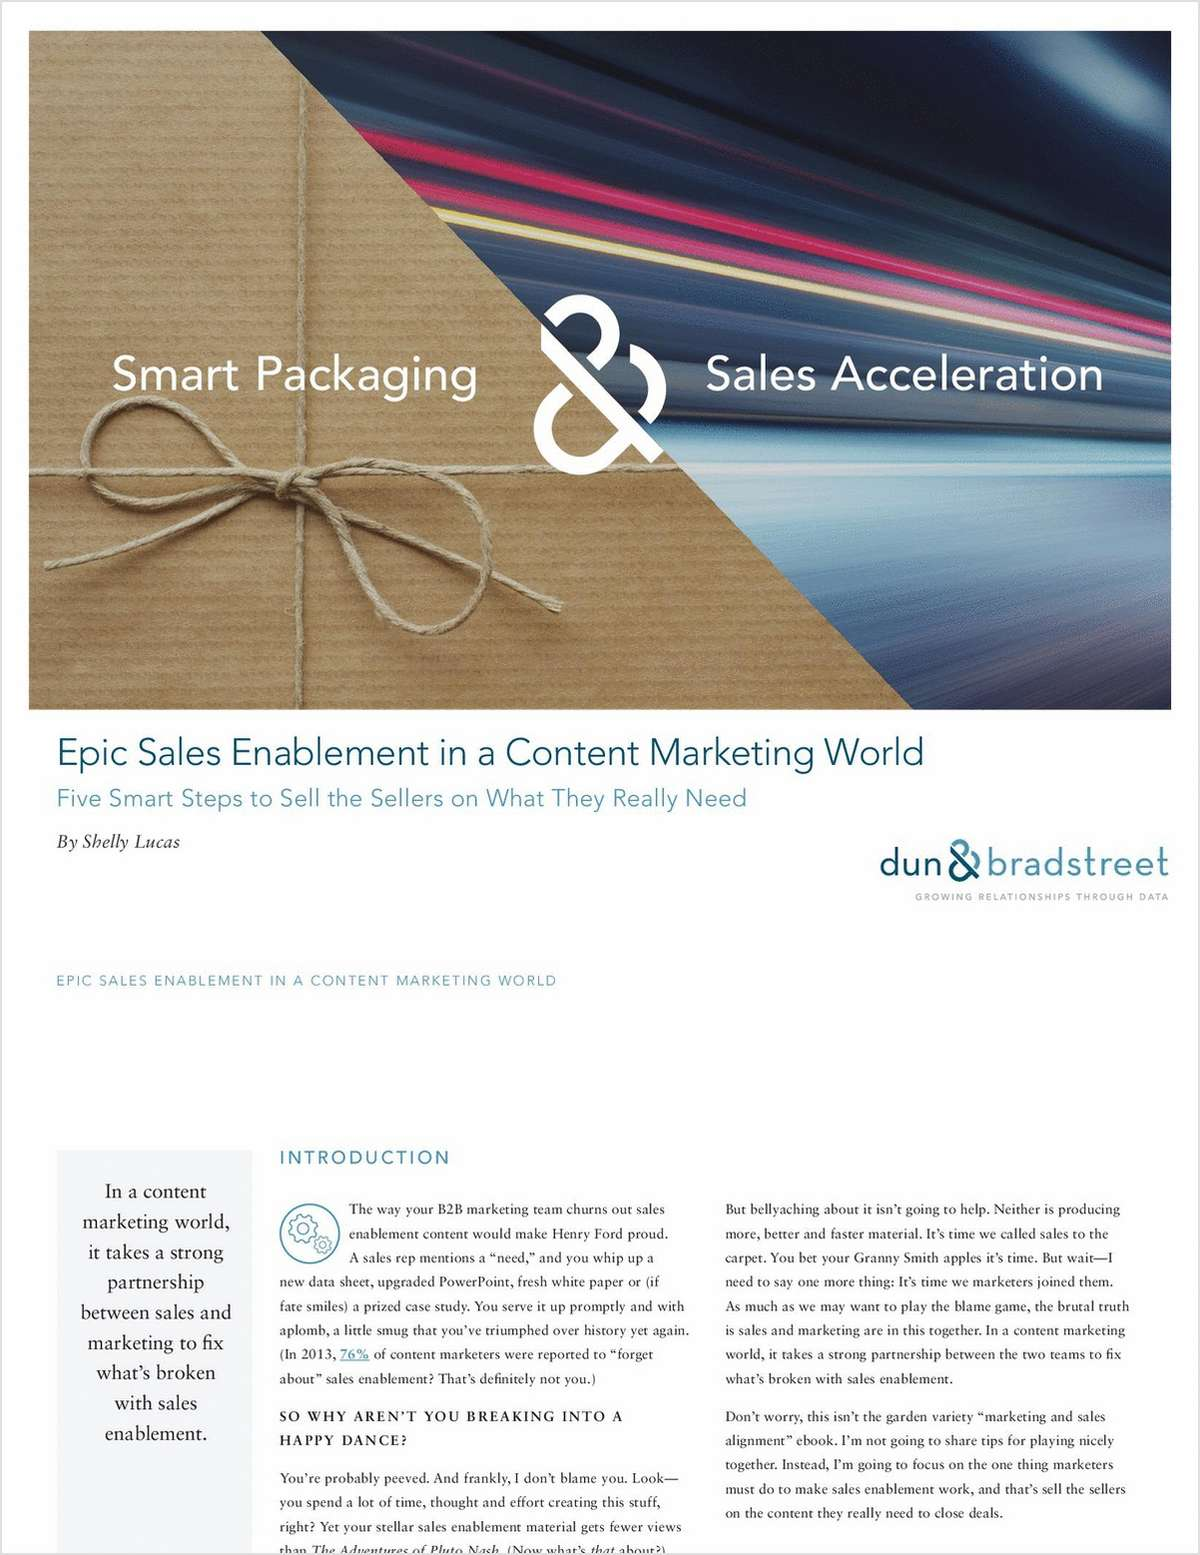 Tired of Sales Reps Ignoring Your Sales Enablement Content?